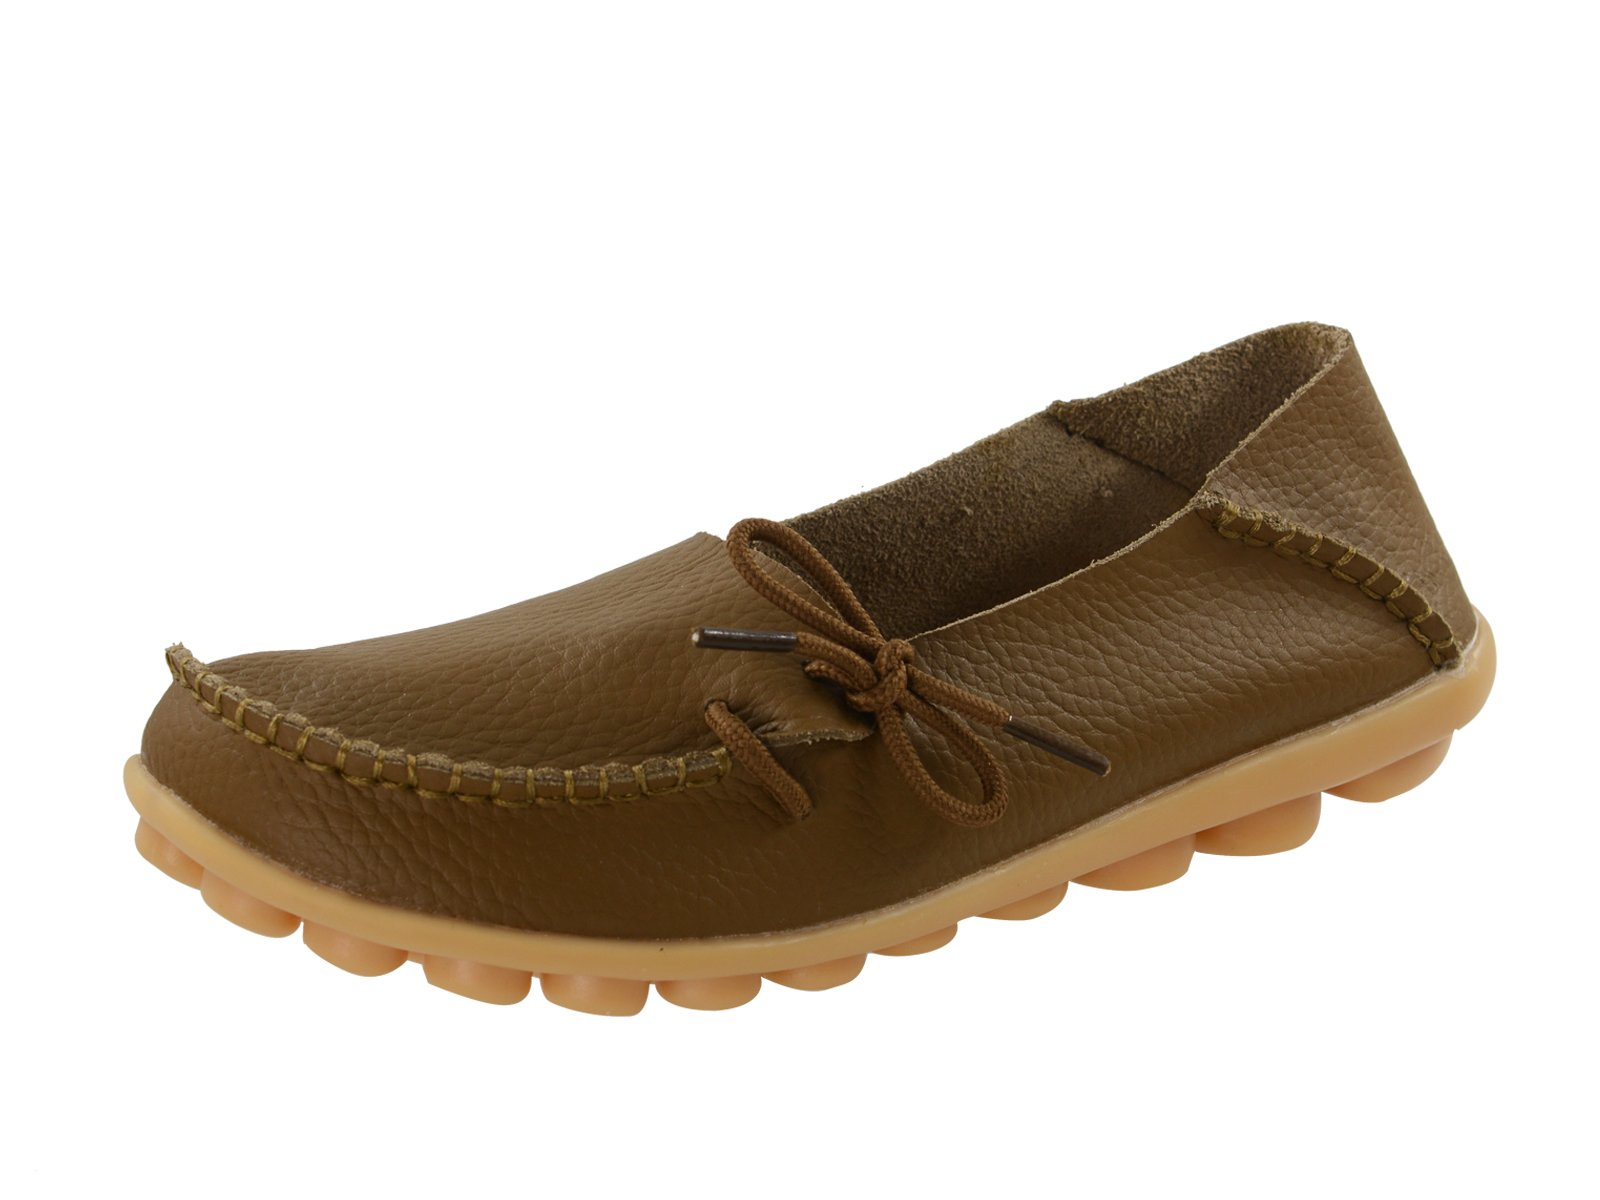 Century Star Women's Casual Cowhide Lace-Up Slip-On Driving Moccasin Loafer Flats Slippers Boat Shoes Camel 9 B(M) US